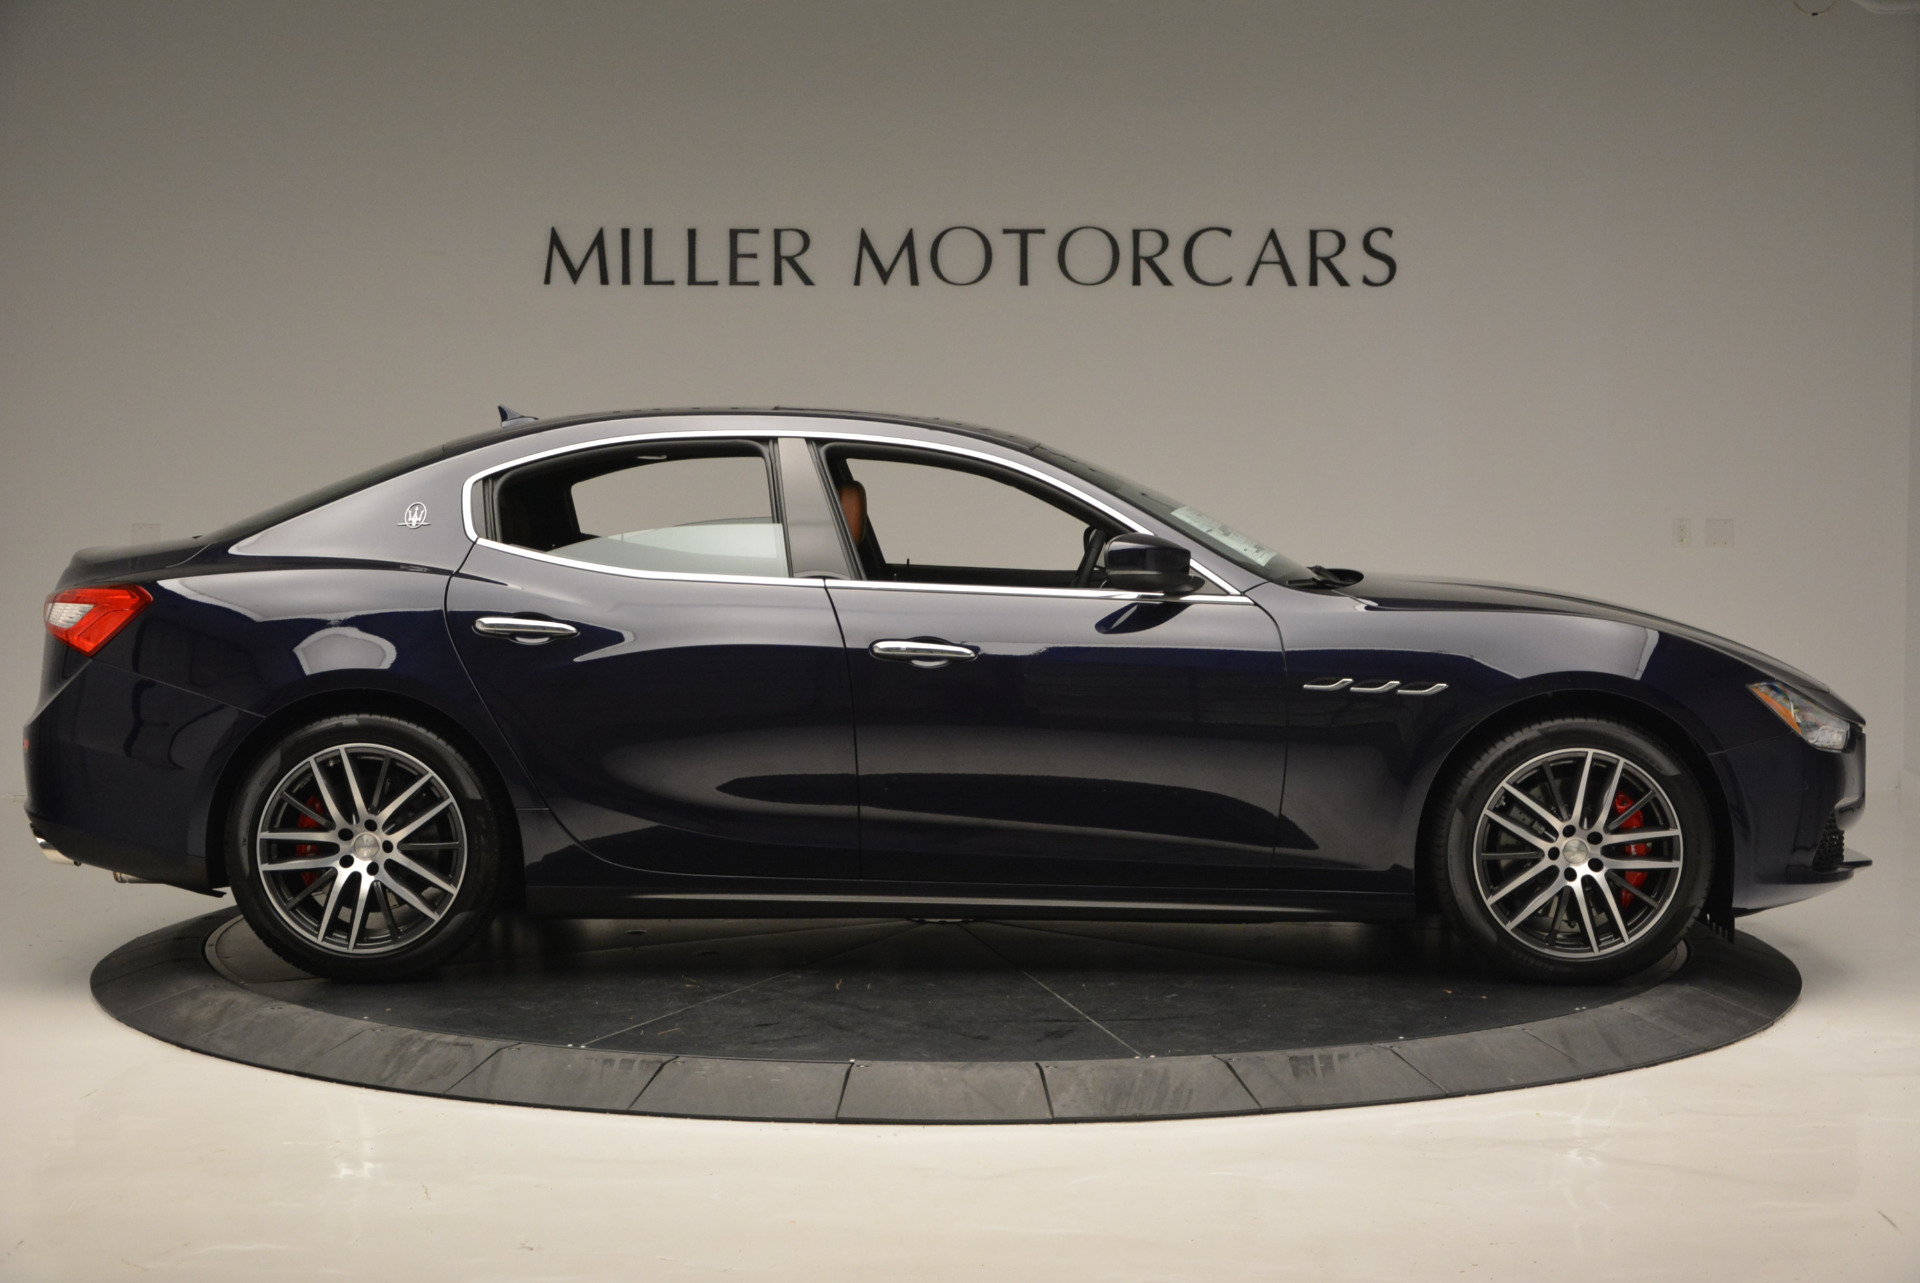 Used 2017 Maserati Ghibli S Q4 - EX Loaner For Sale In Greenwich, CT 567_p9